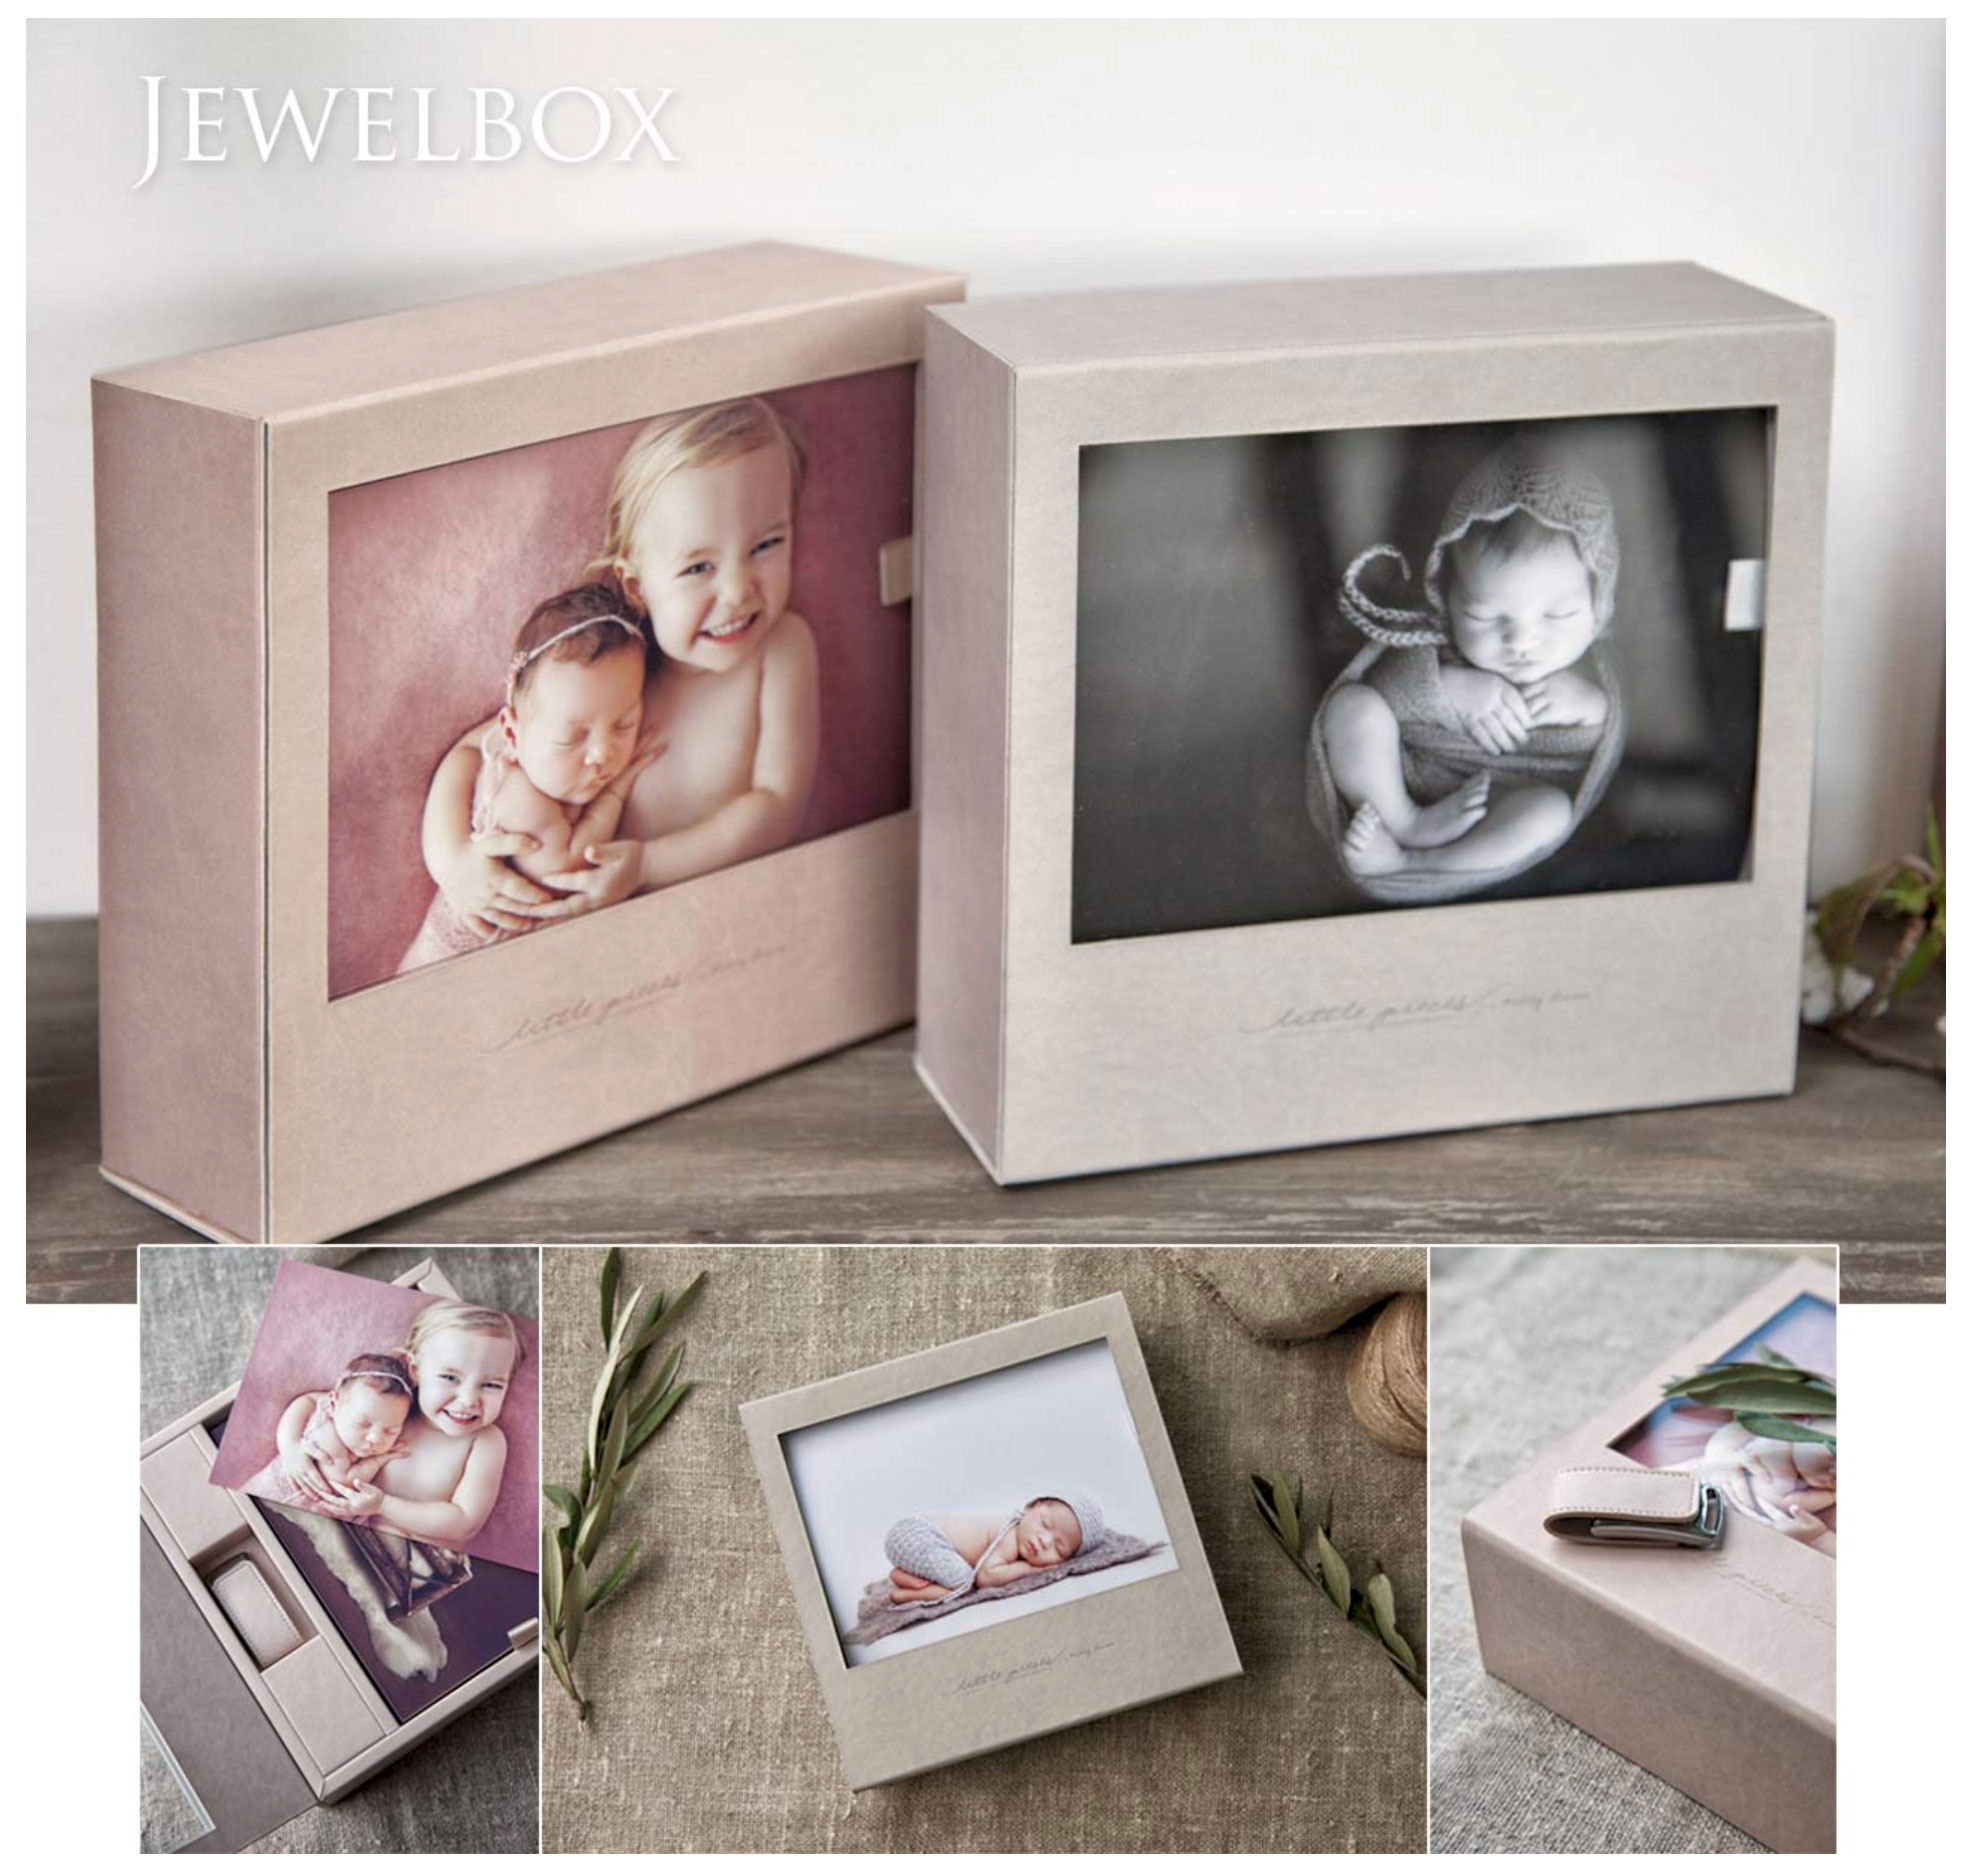 Jewel-box-image